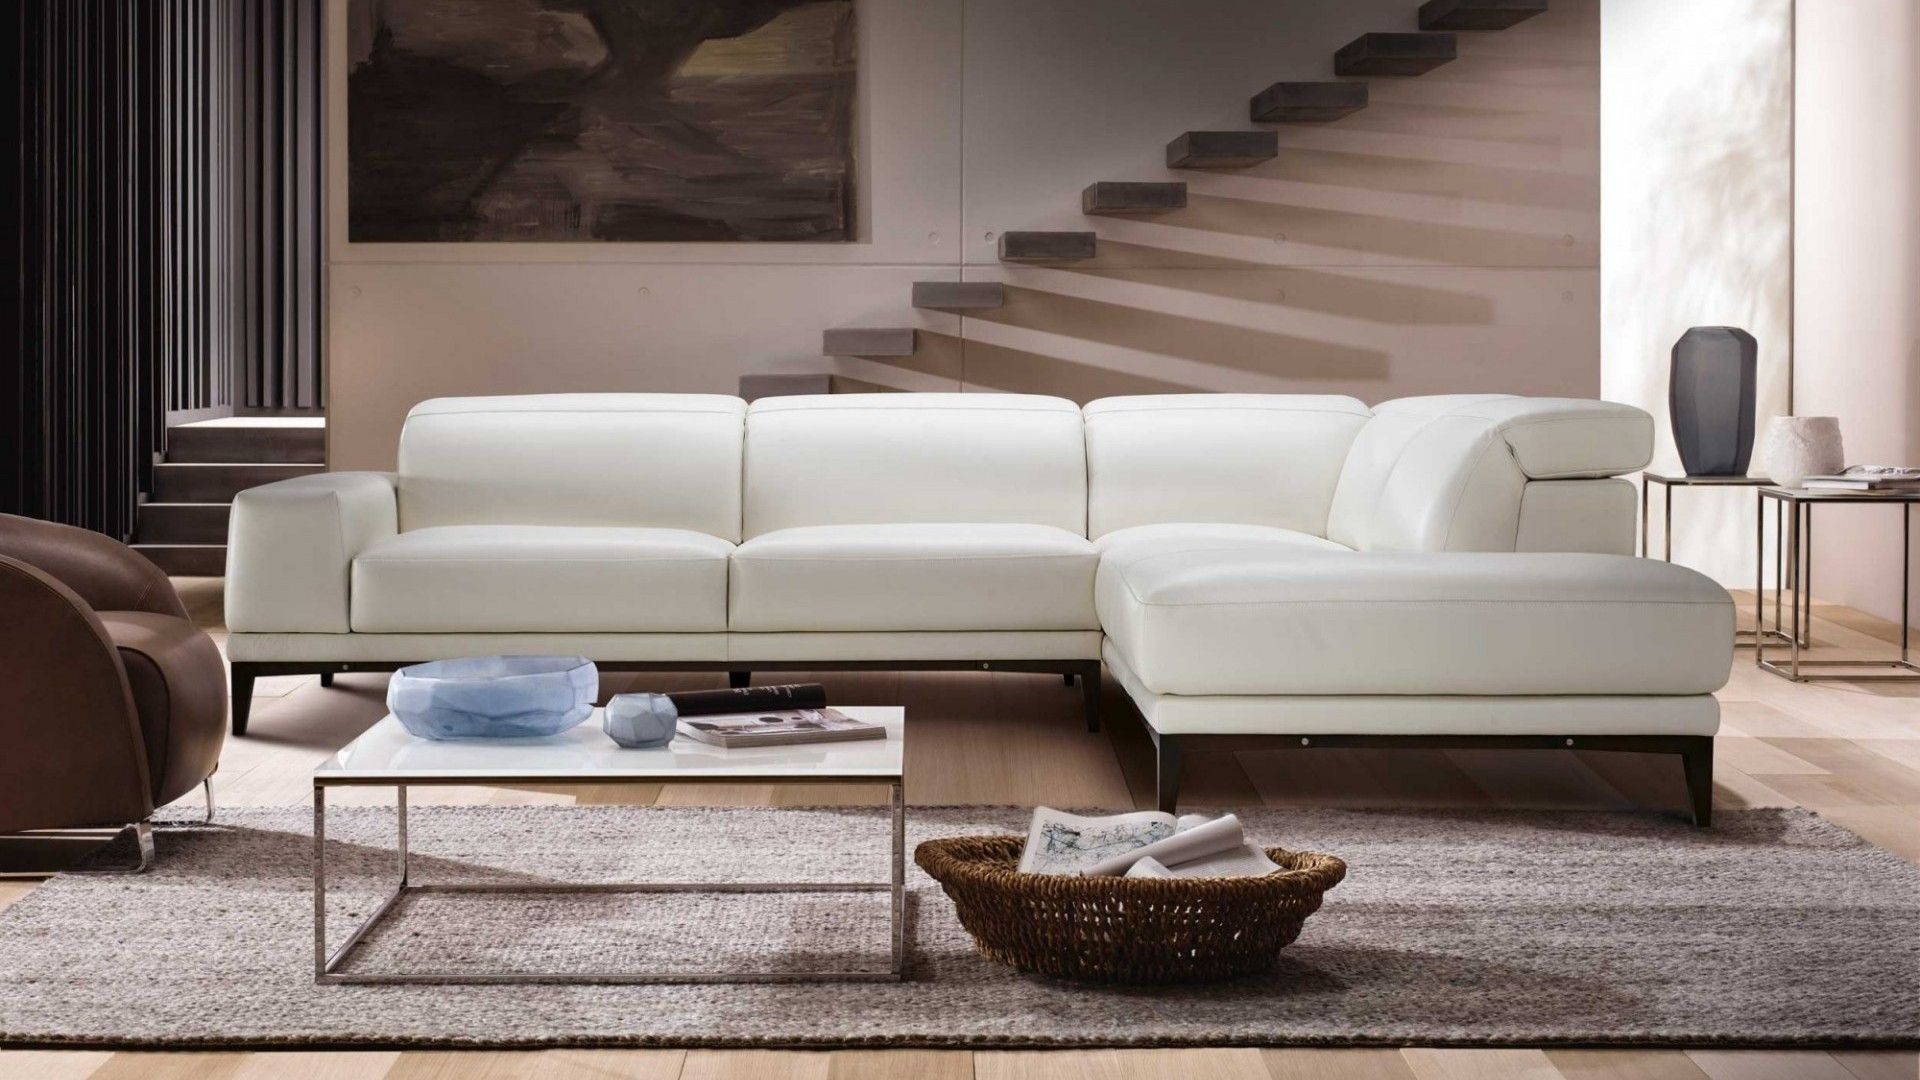 Borghese Natuzzi Oh for a beautiful sofa